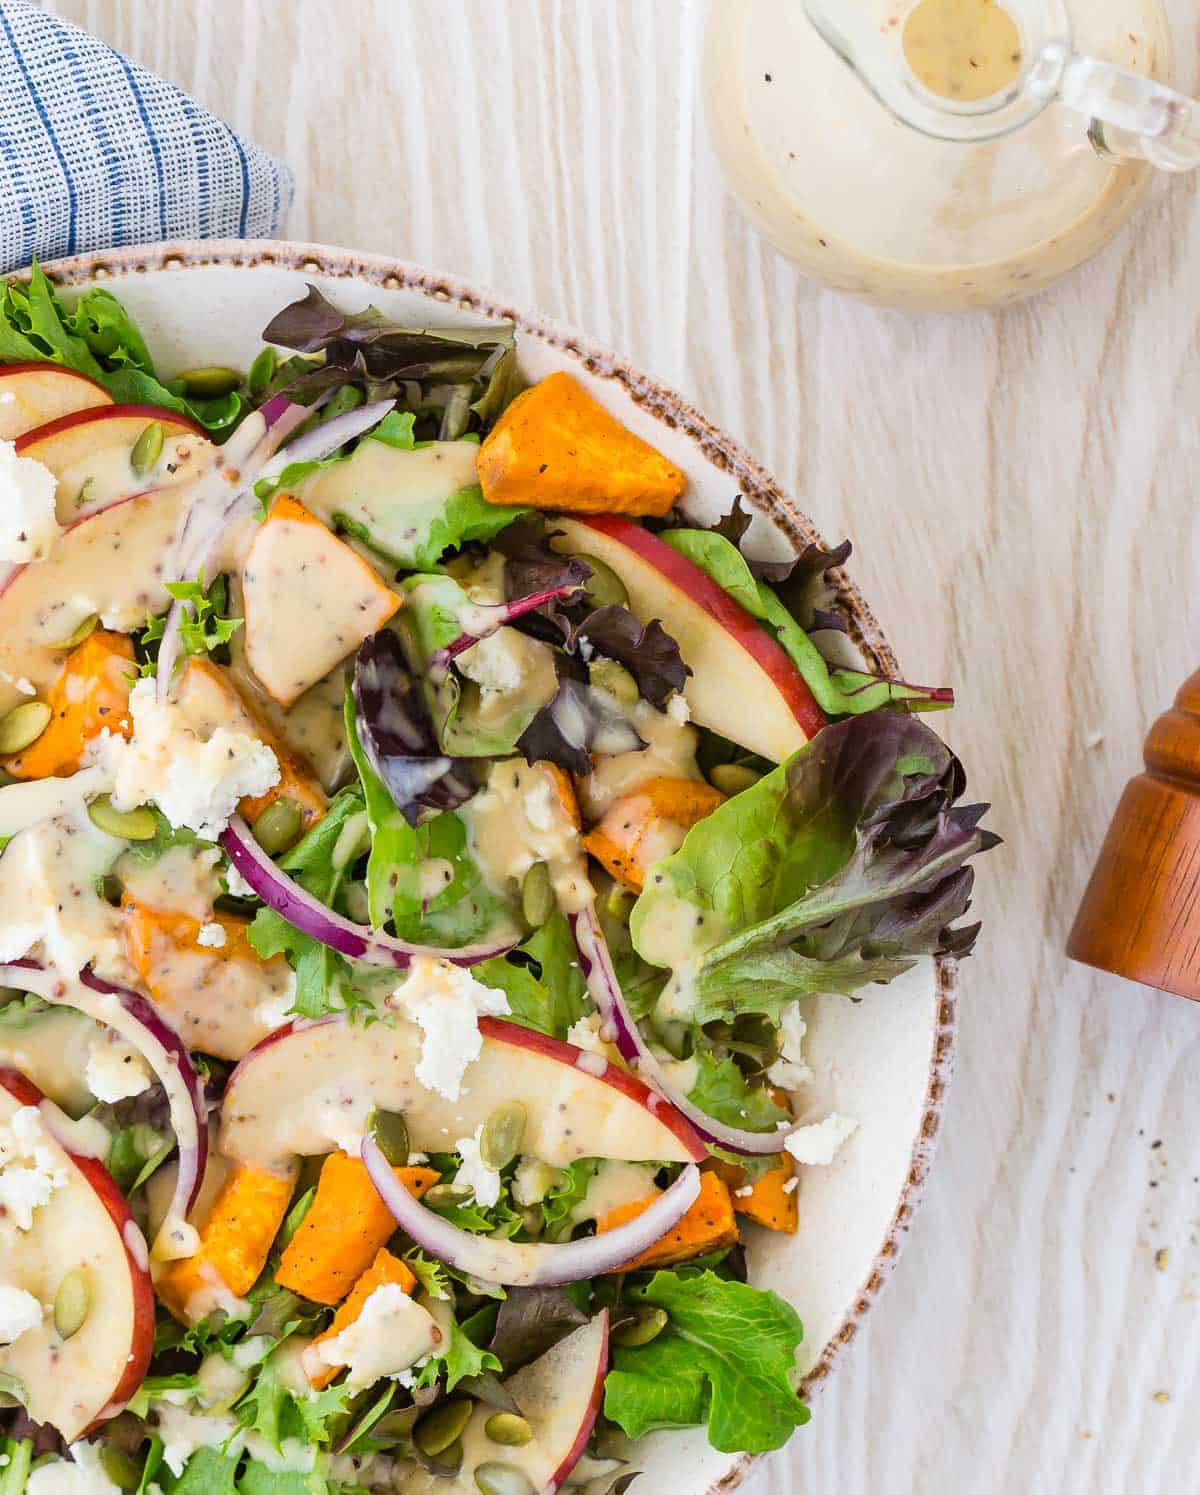 Colorful fall harvest salad with a creamy dressing on a light wood background.